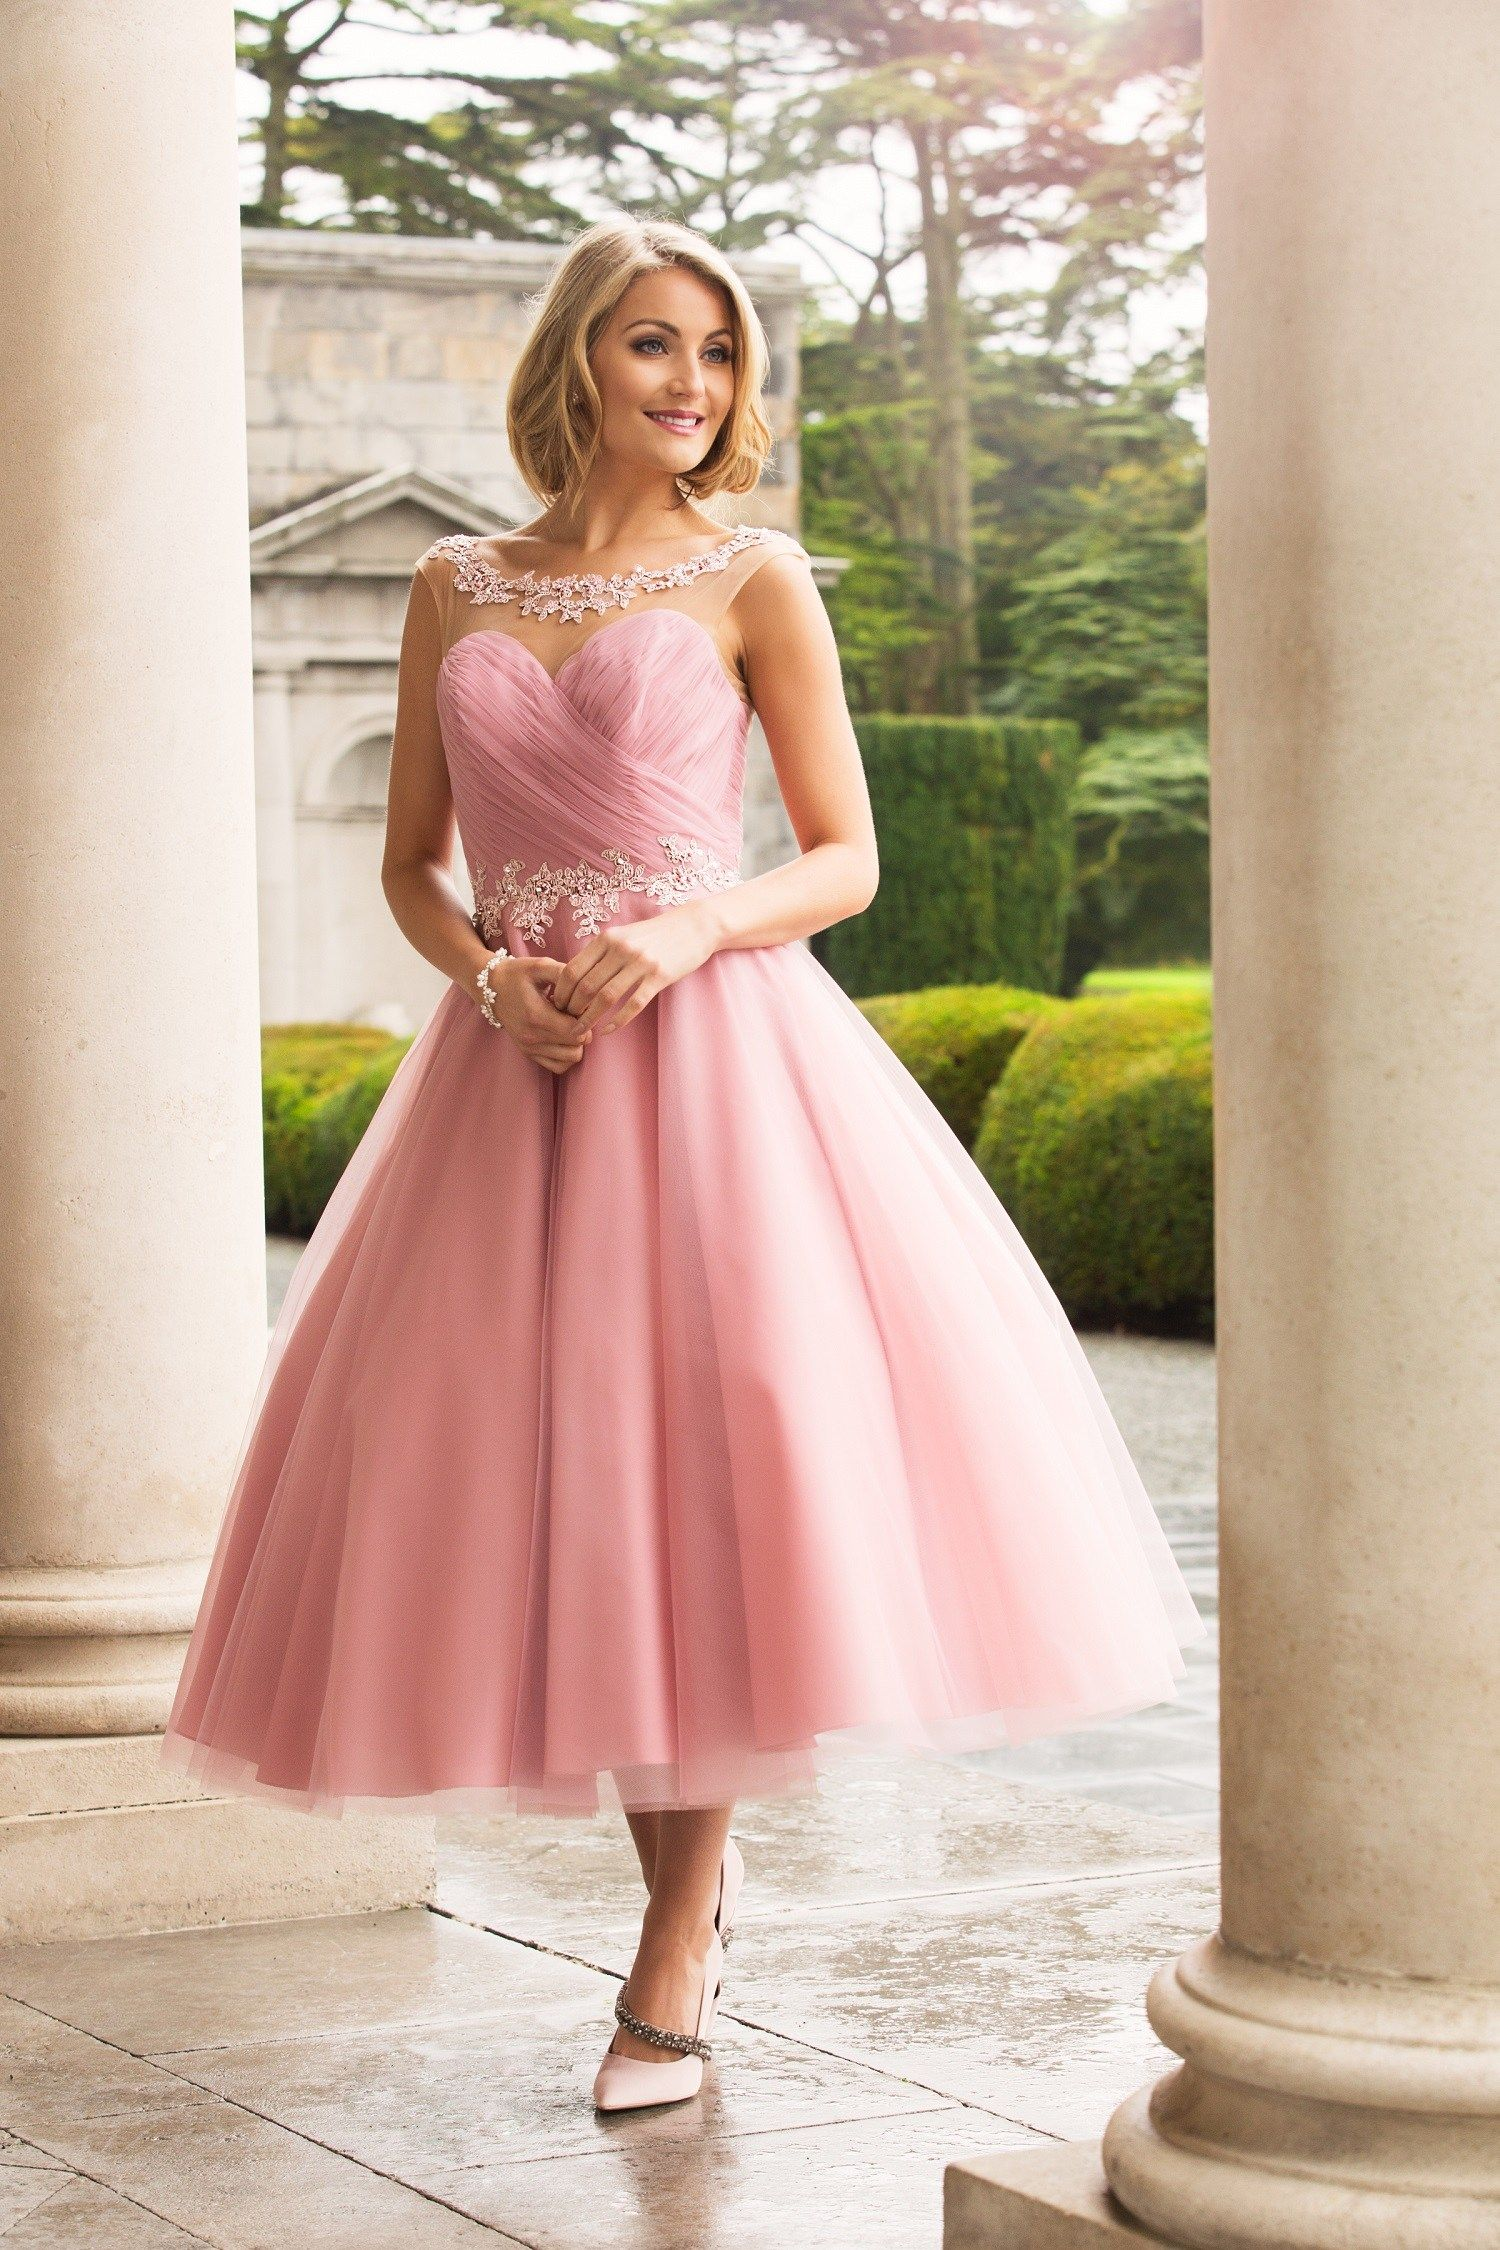 Tea Length A-line Pink Tulle Bridesmaid Dress with Lace | wedding ...